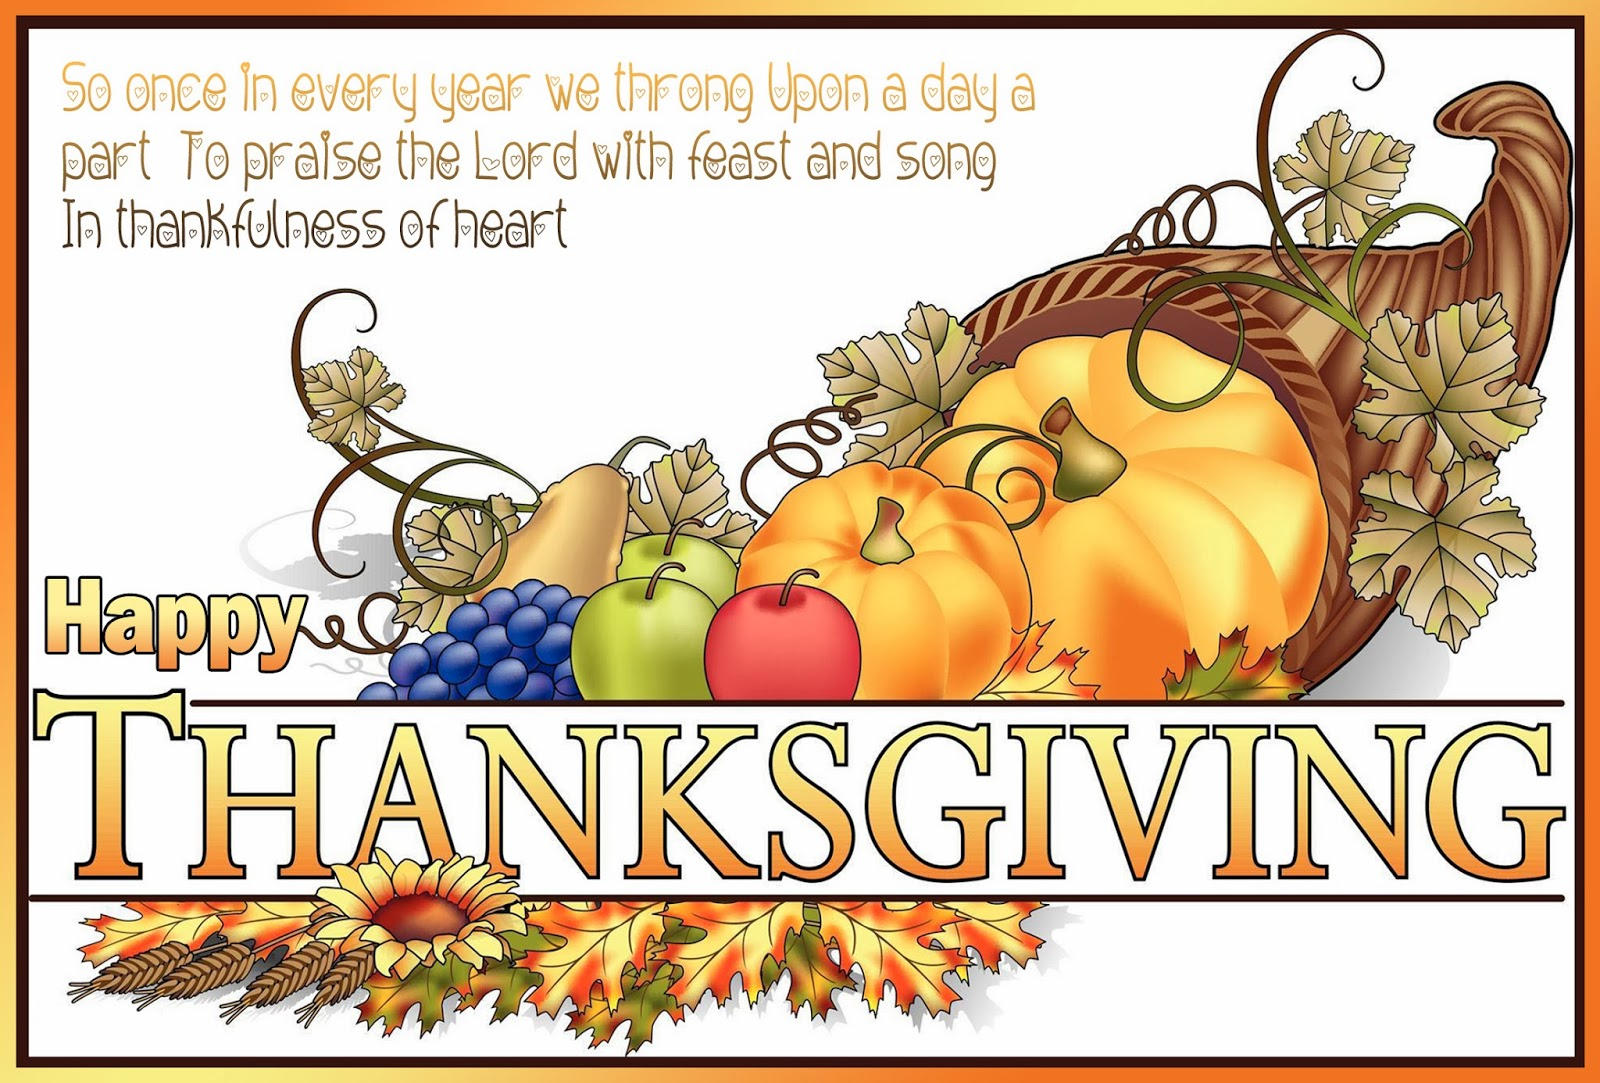 Heart Quotes With Pictures And Cards: Inspirational Thanksgiving Quotes Hearts. QuotesGram